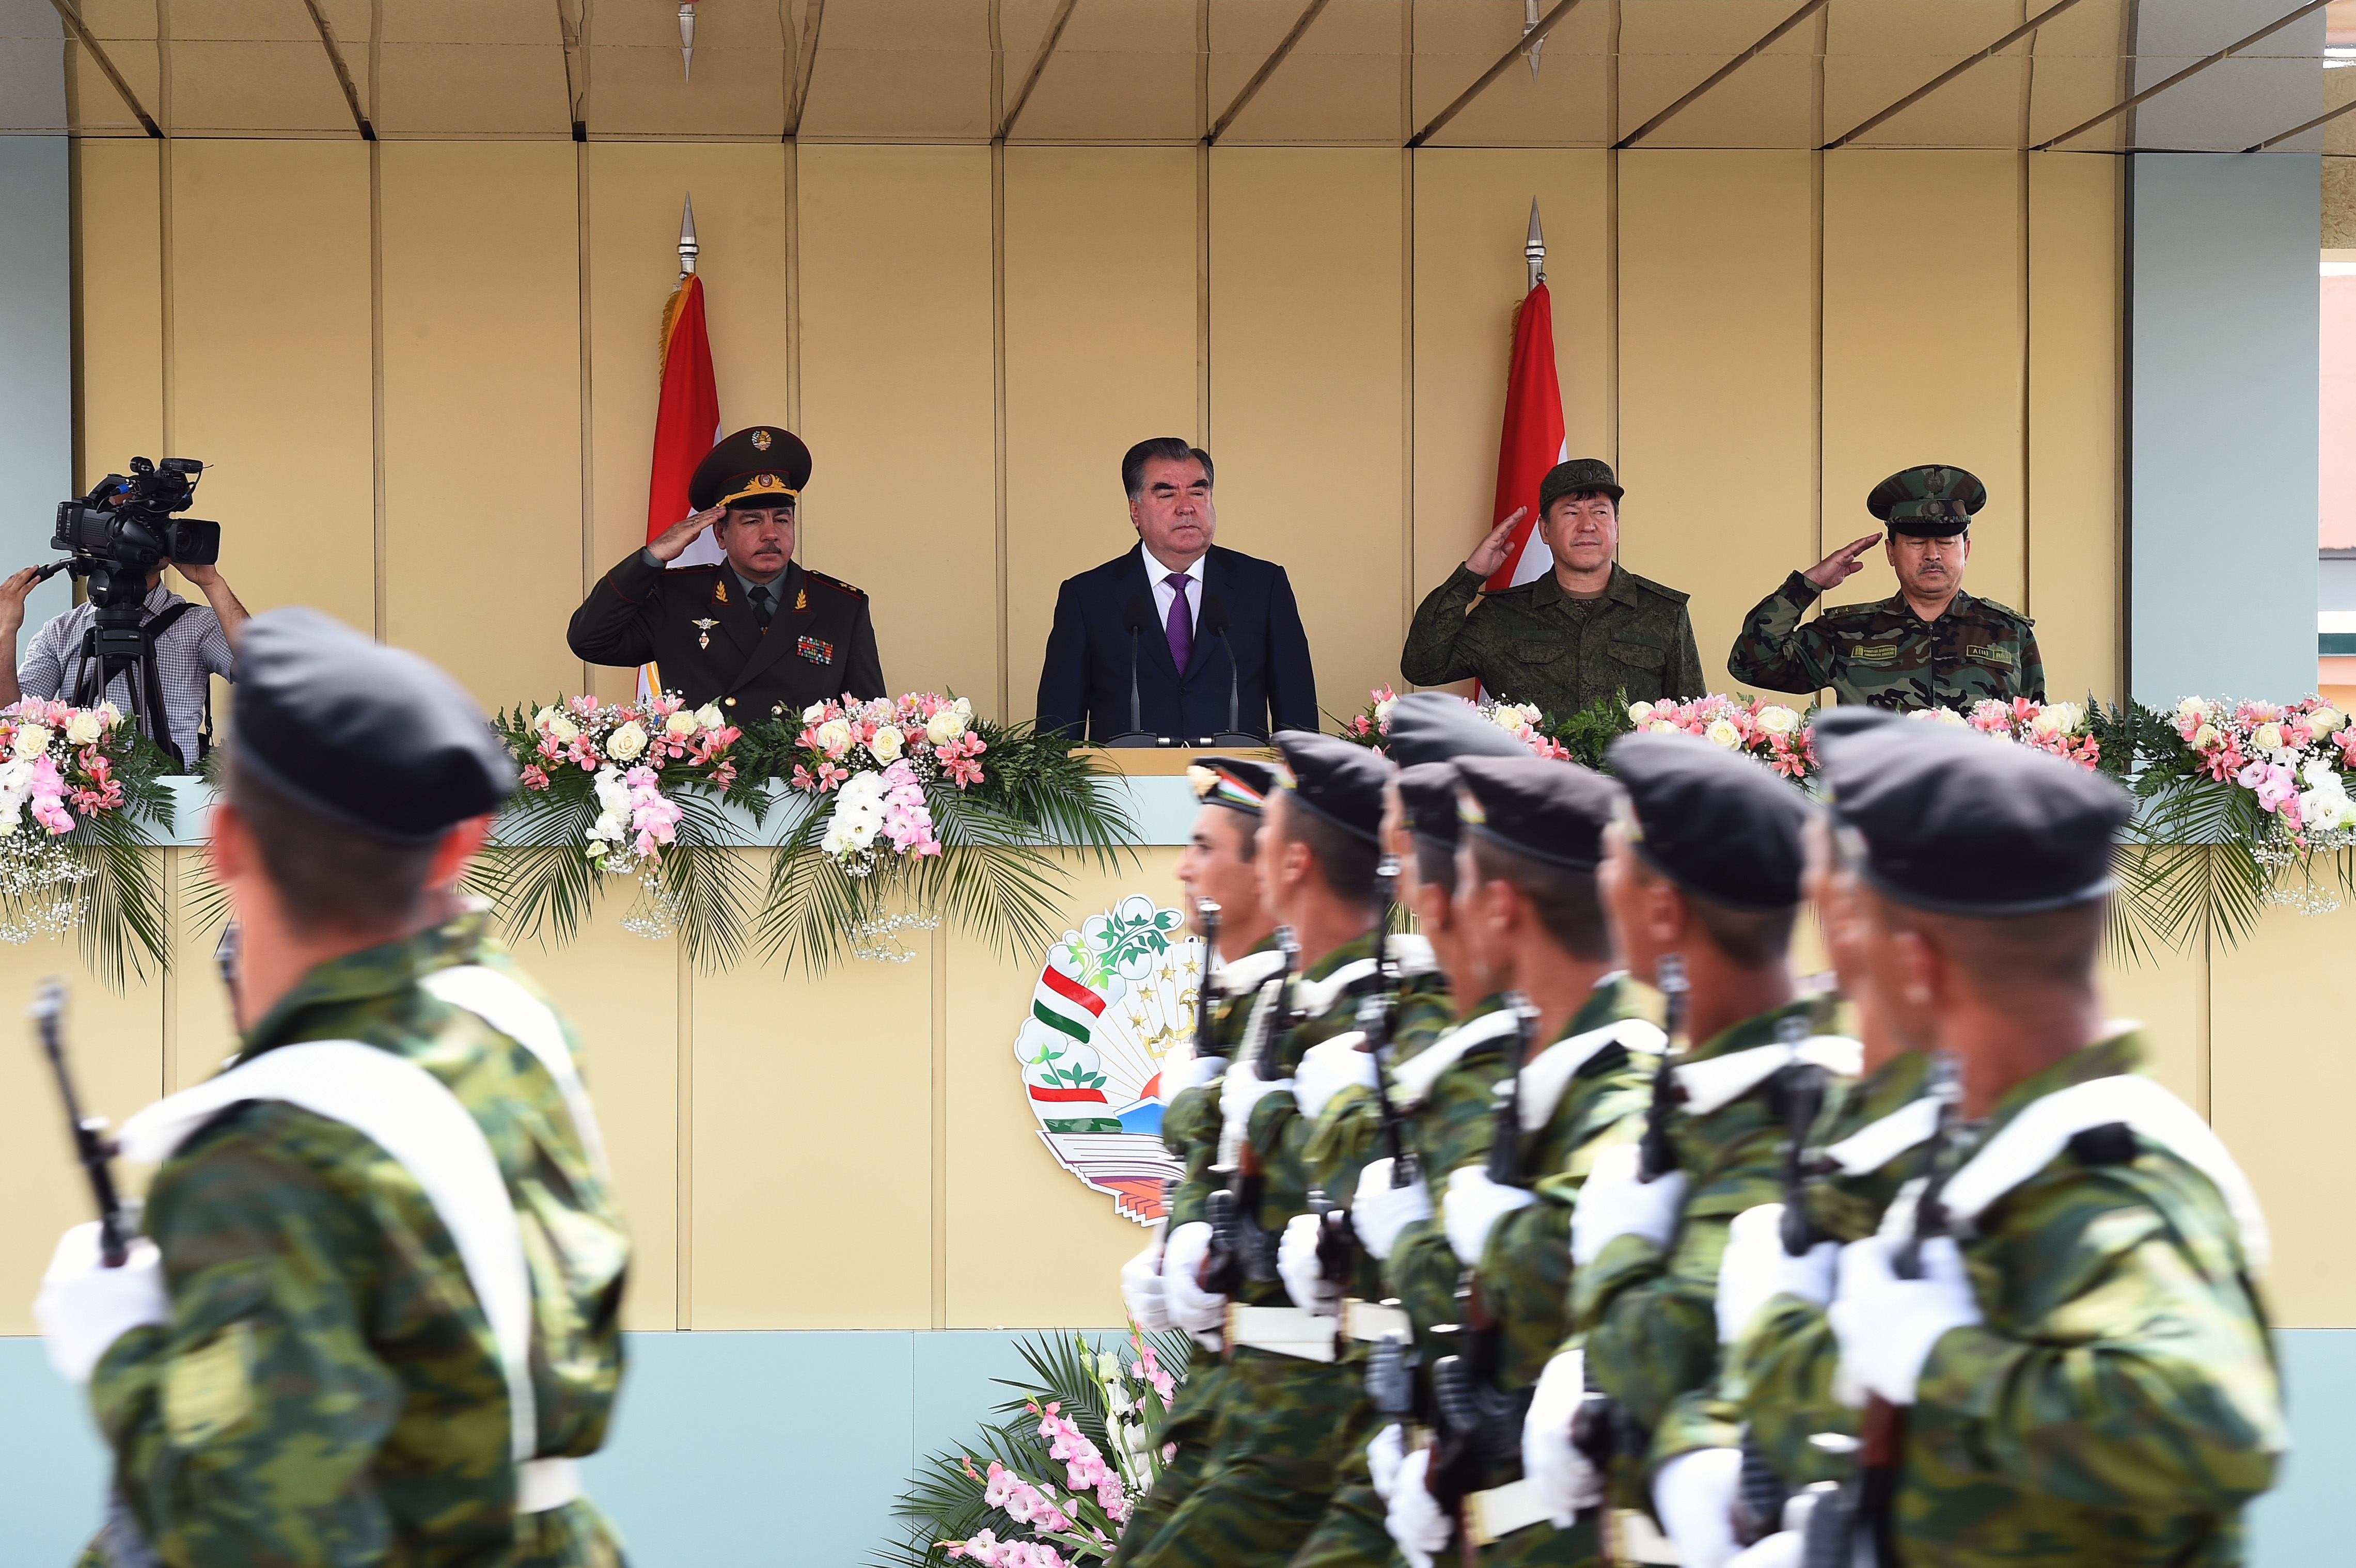 President Rahmon inaugurates a newly-founded special service military brigade (photo credit: Media Services of the President of the Republic of Tajikistan)